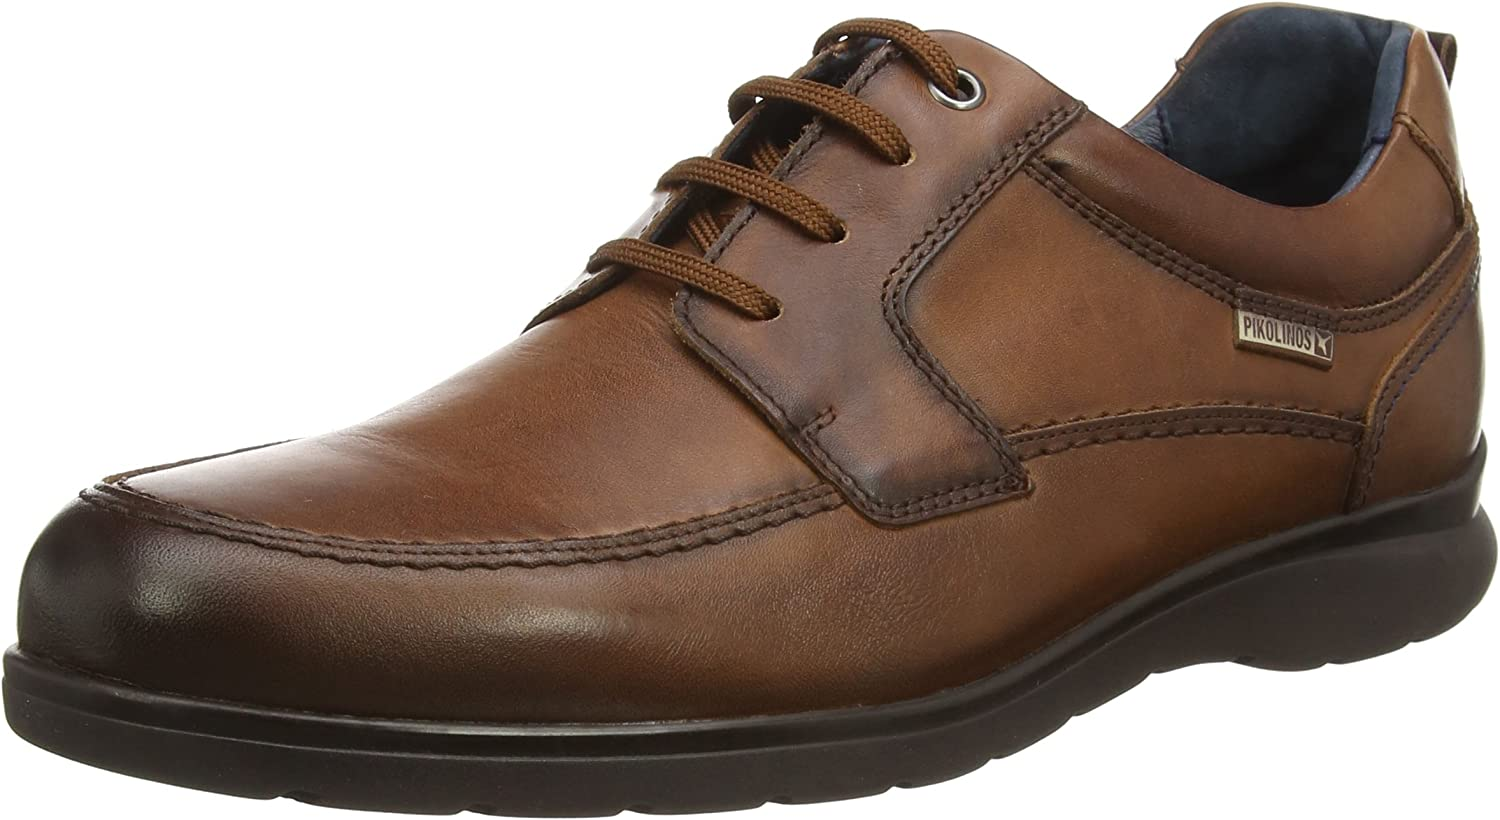 Men's Pikolinos, San Lorenzo Oxford Lace up shoes